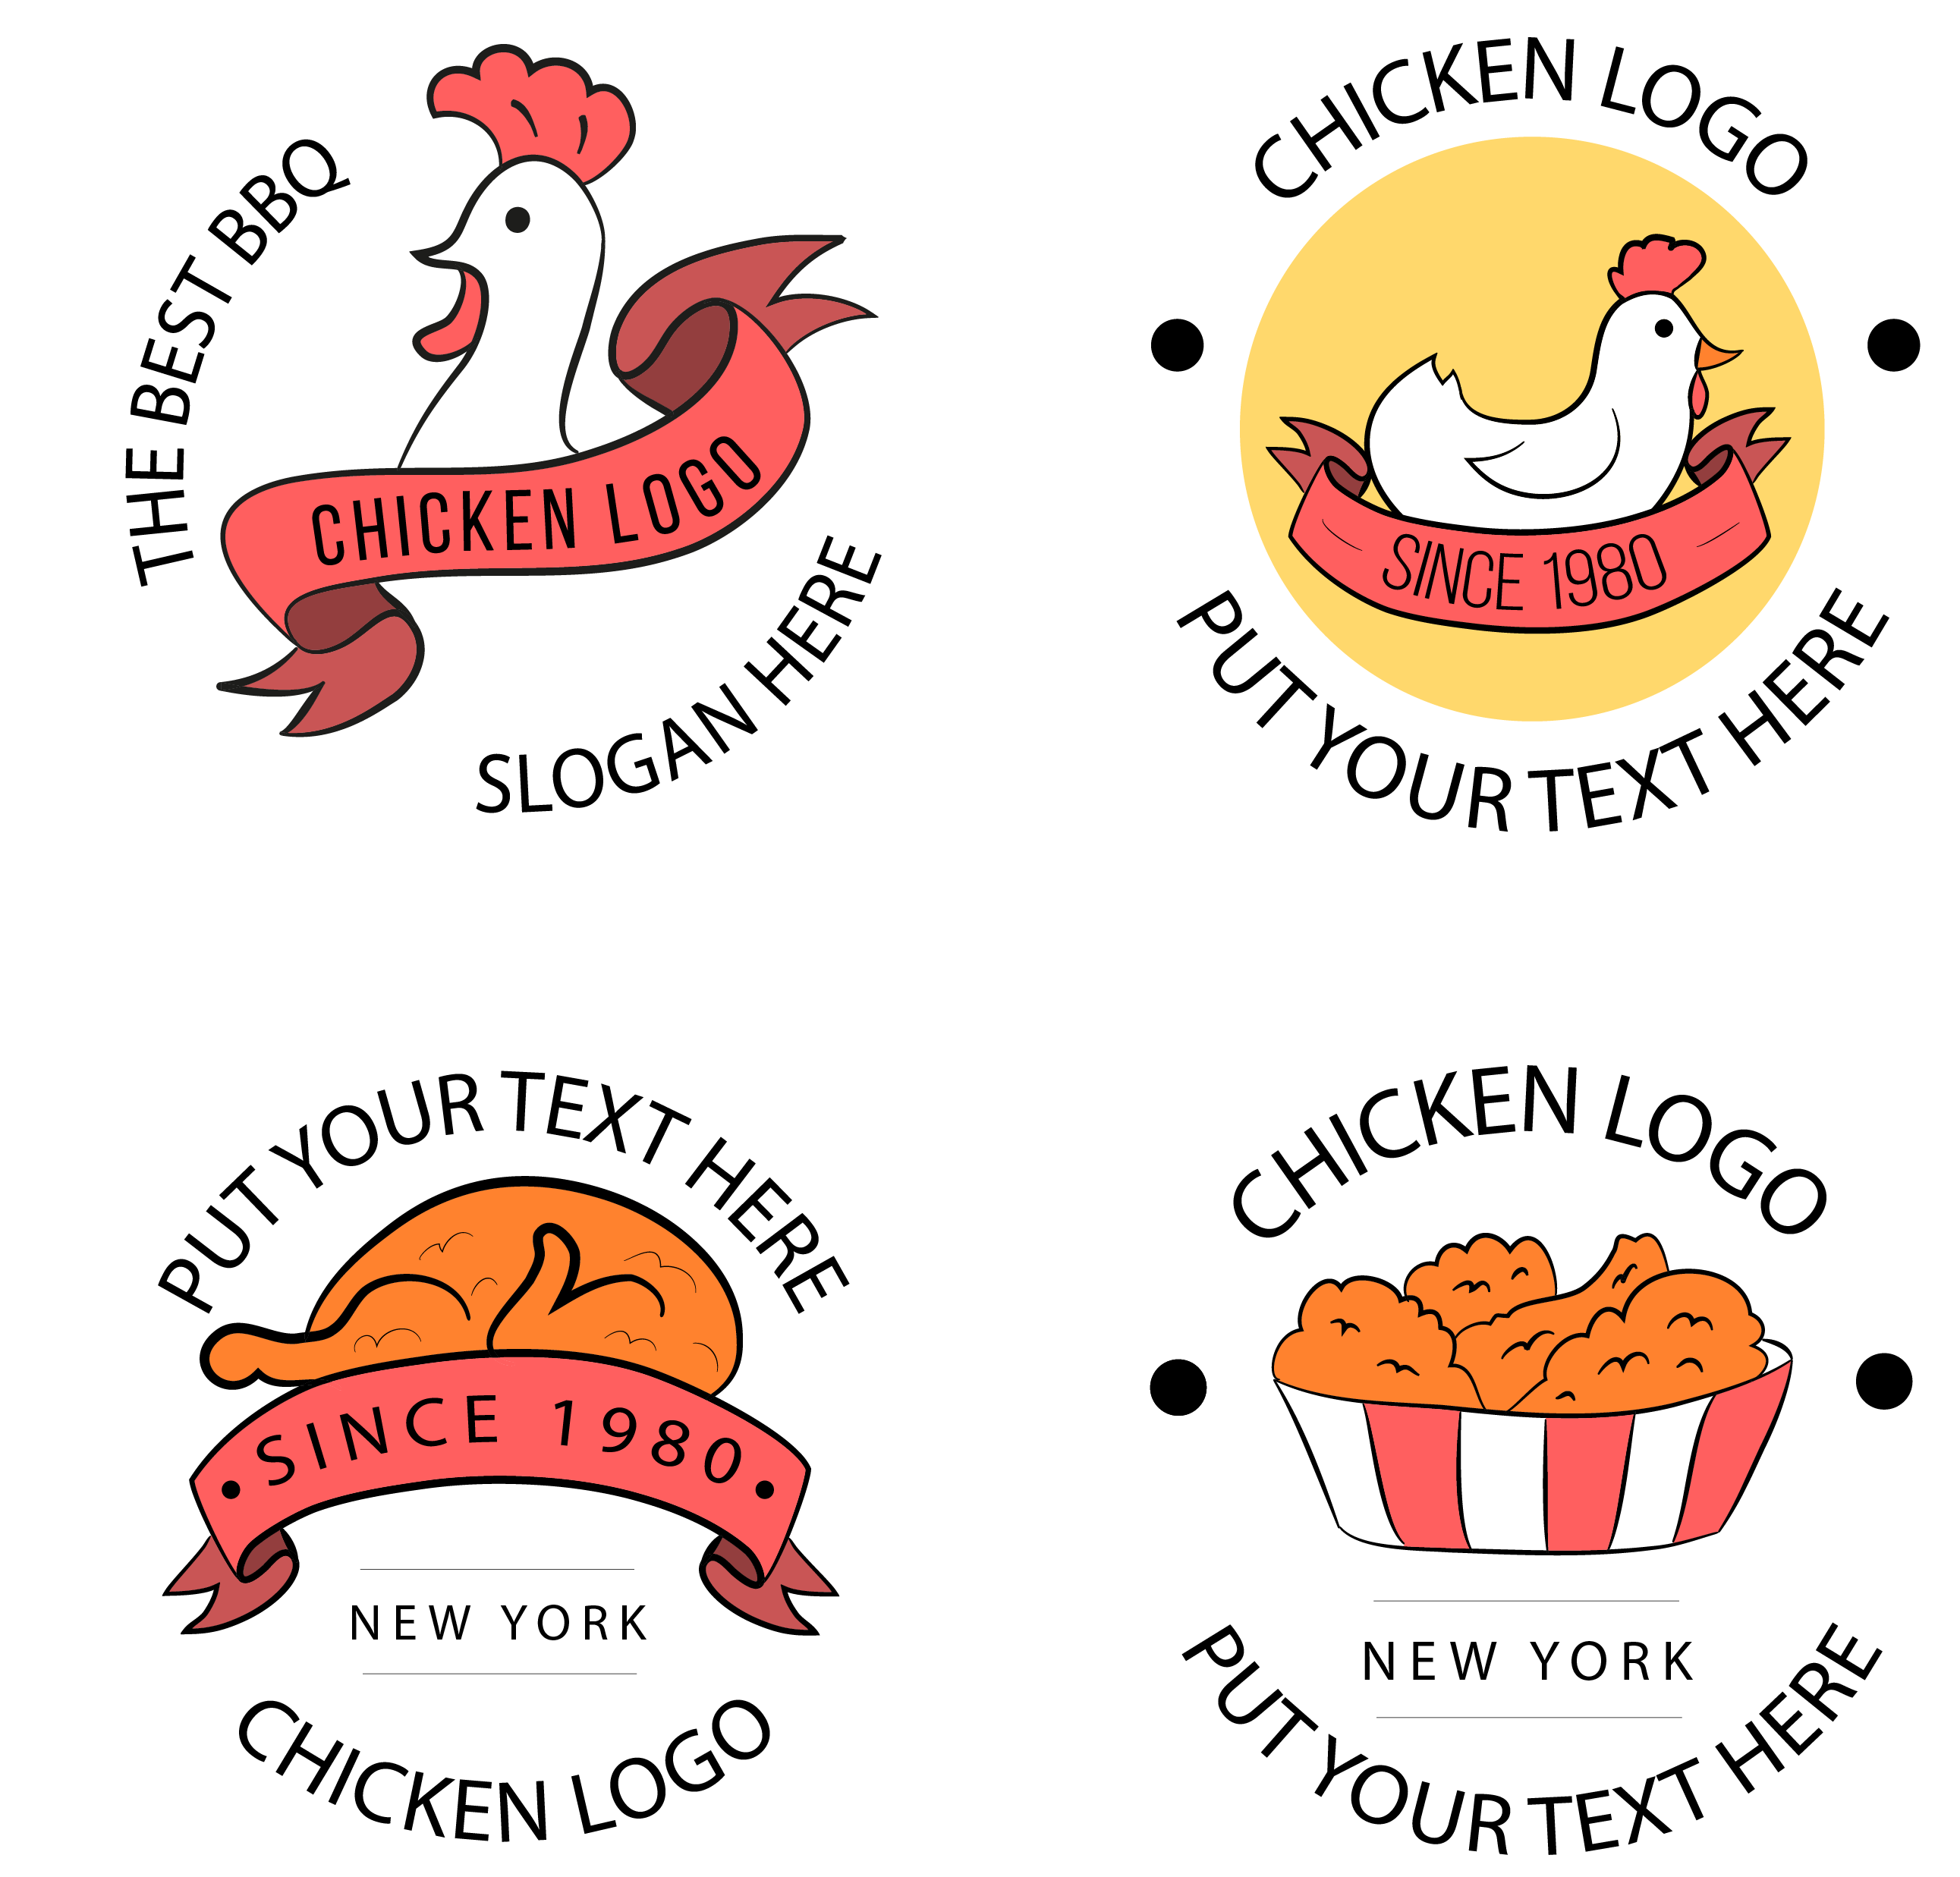 Restaurants clipart. Fast food logos images